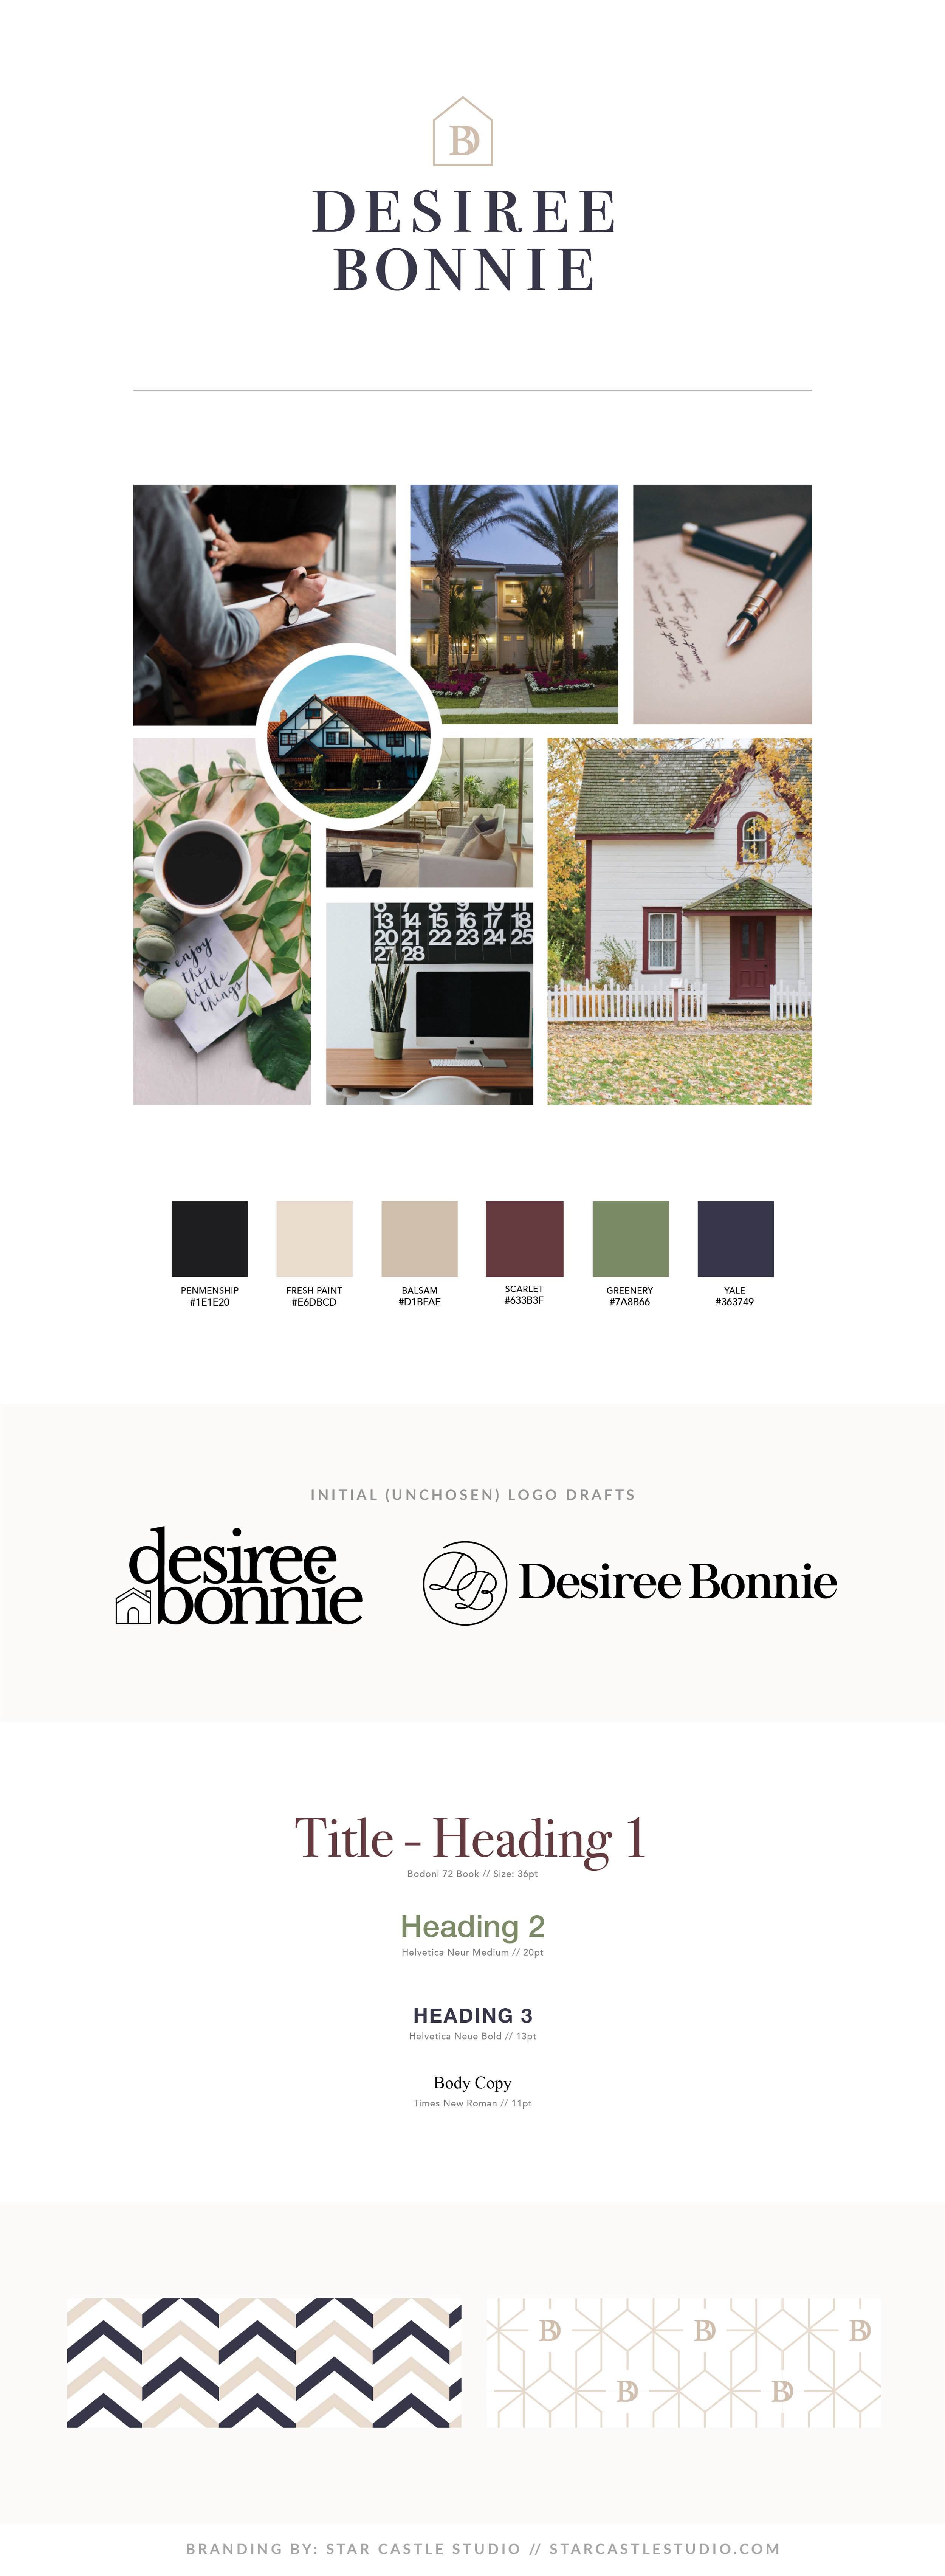 desiree_bonnie_realtor_branding